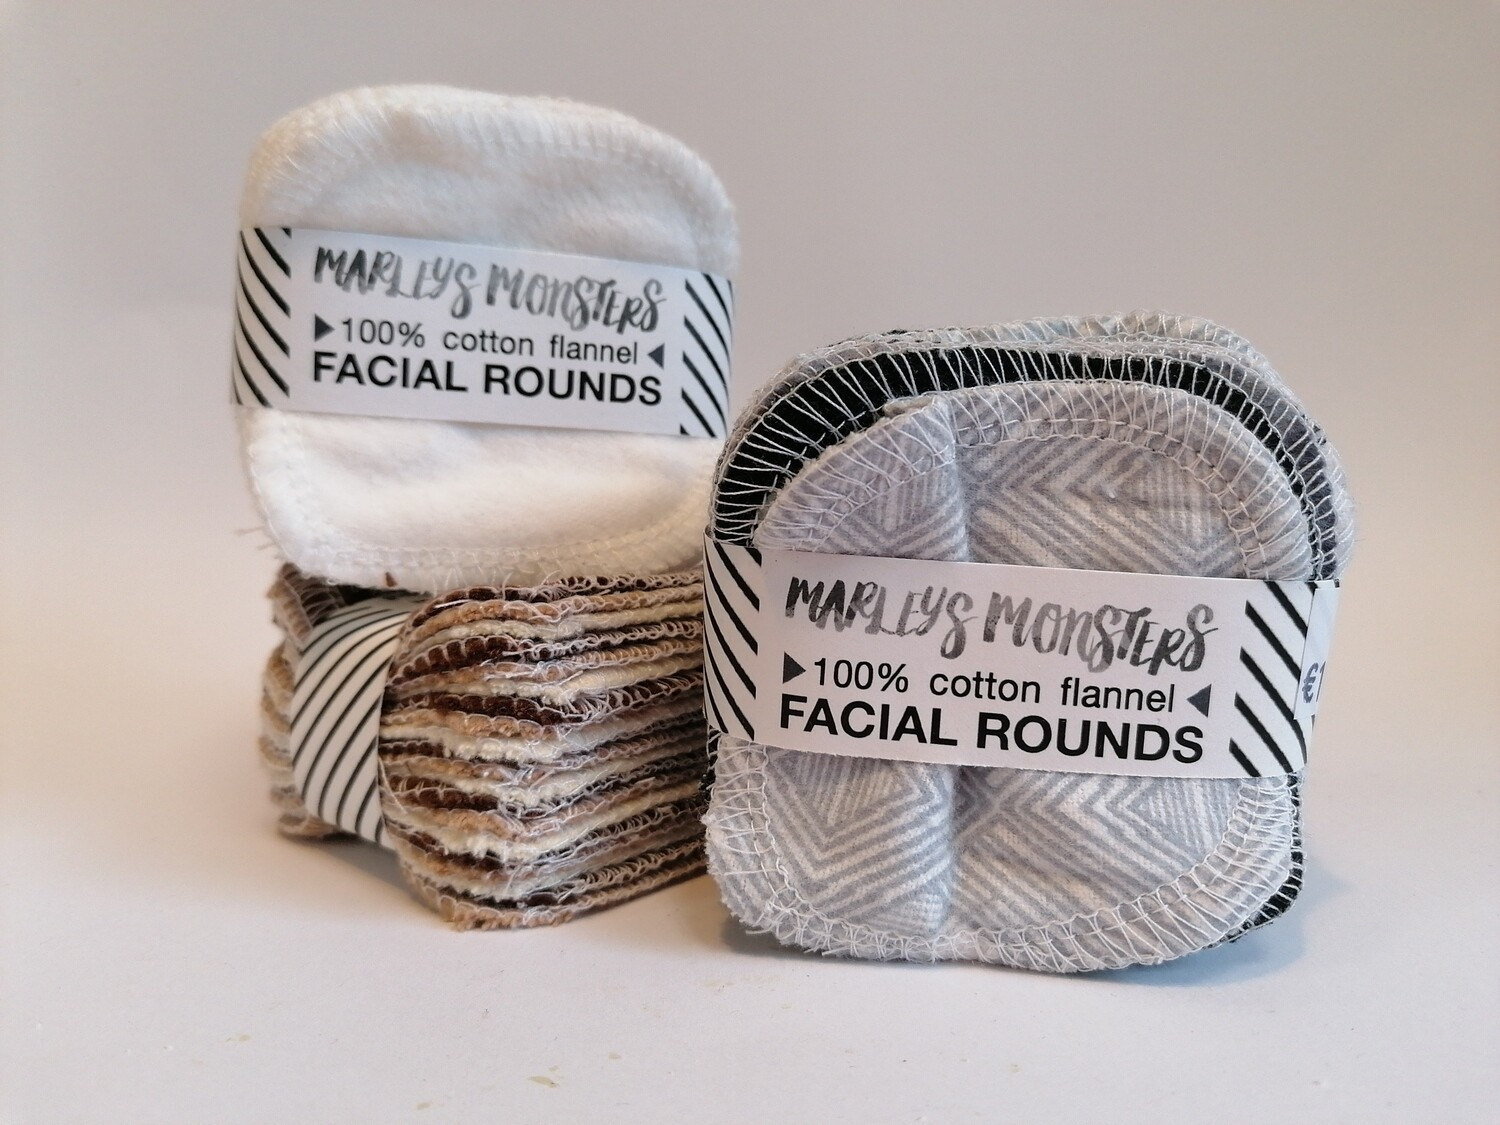 Marleys Monsters Facial Rounds Make Up Pads